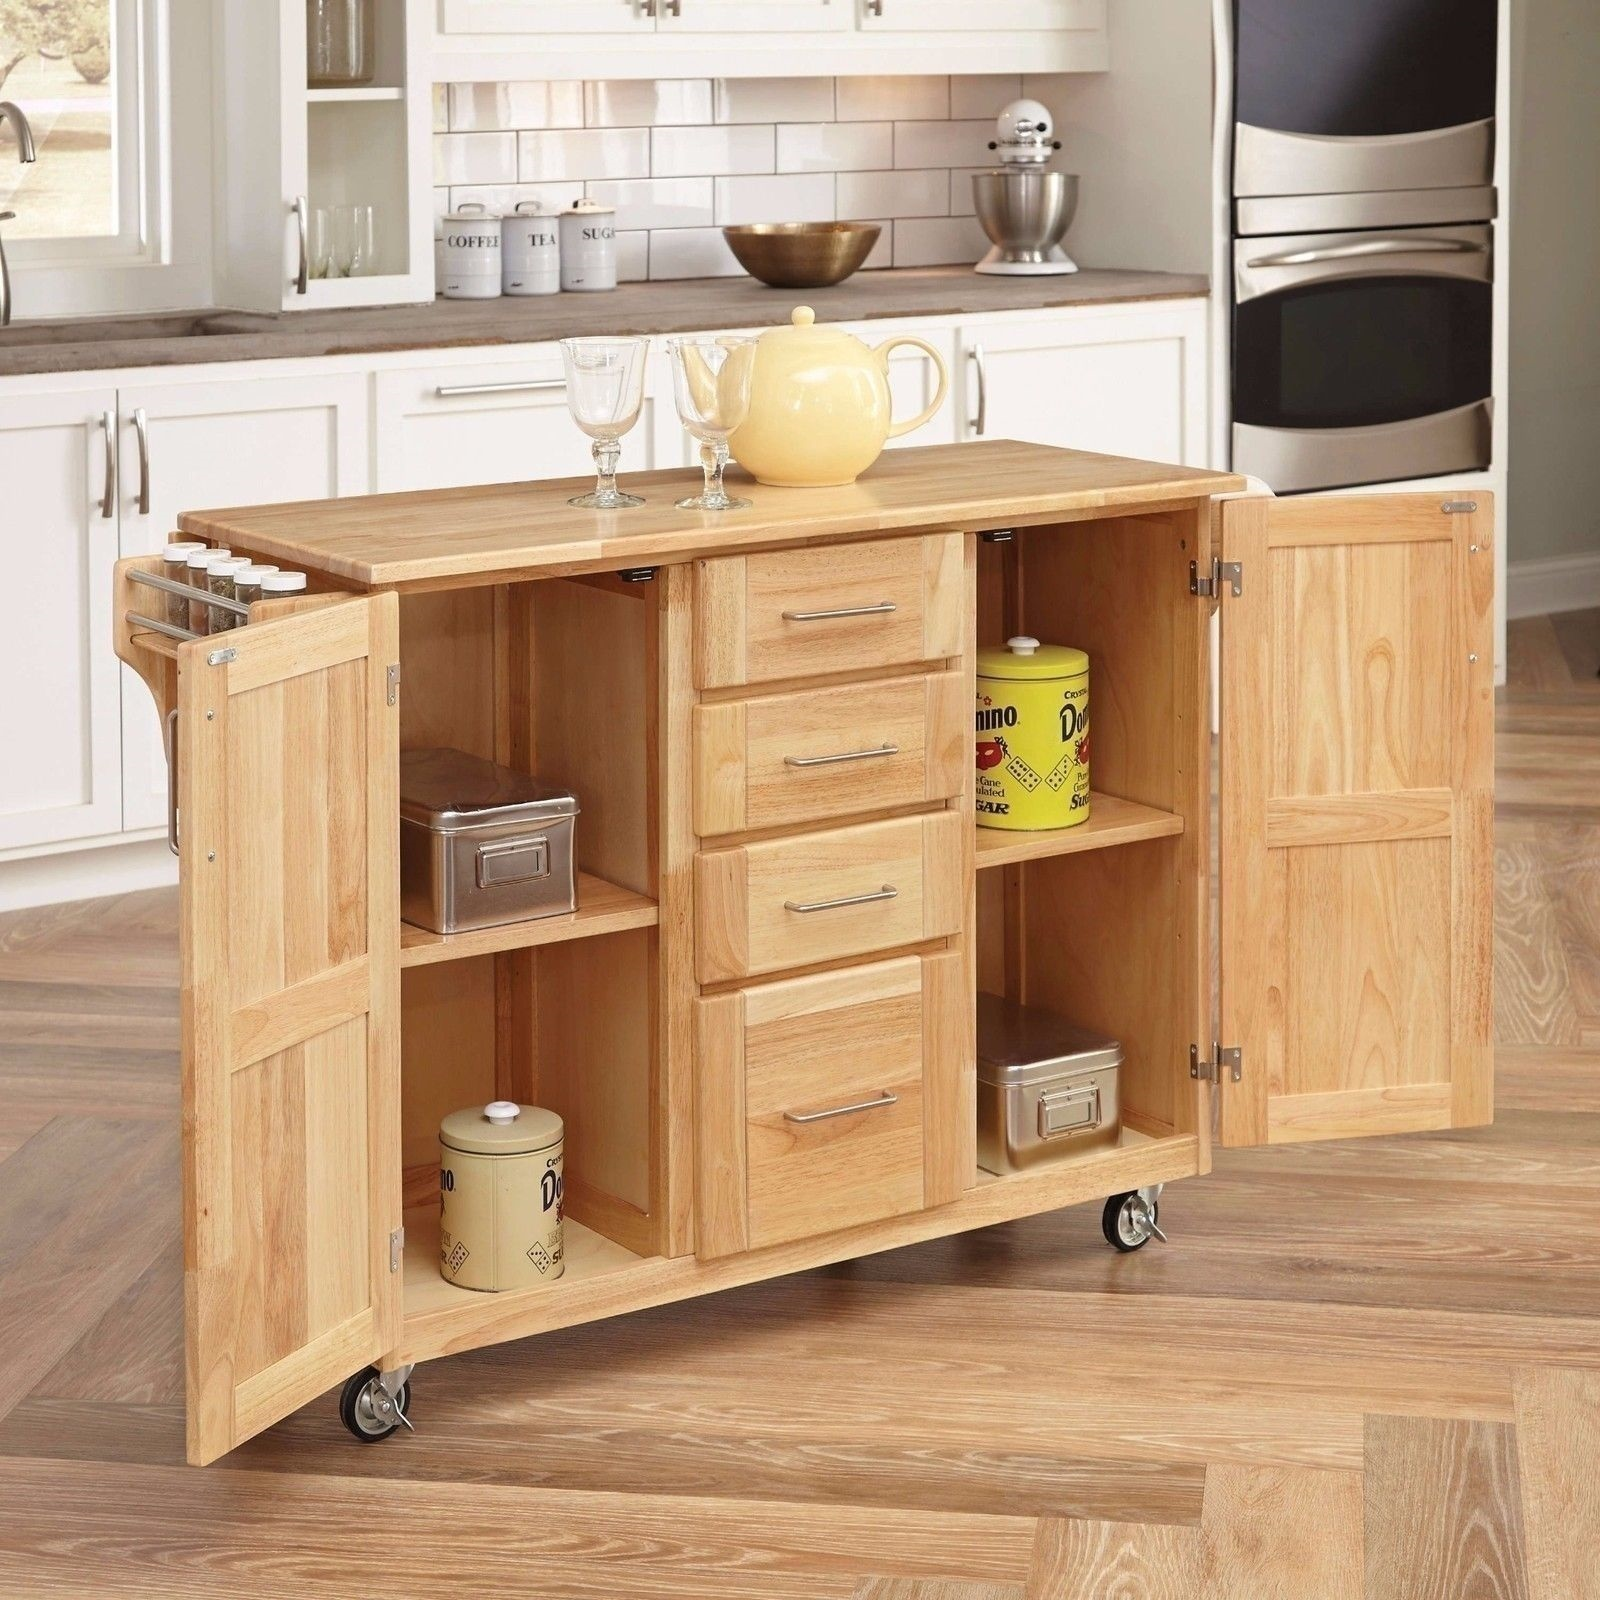 New natural kitchen island utility cart rolling cabinet Kitchen utility island